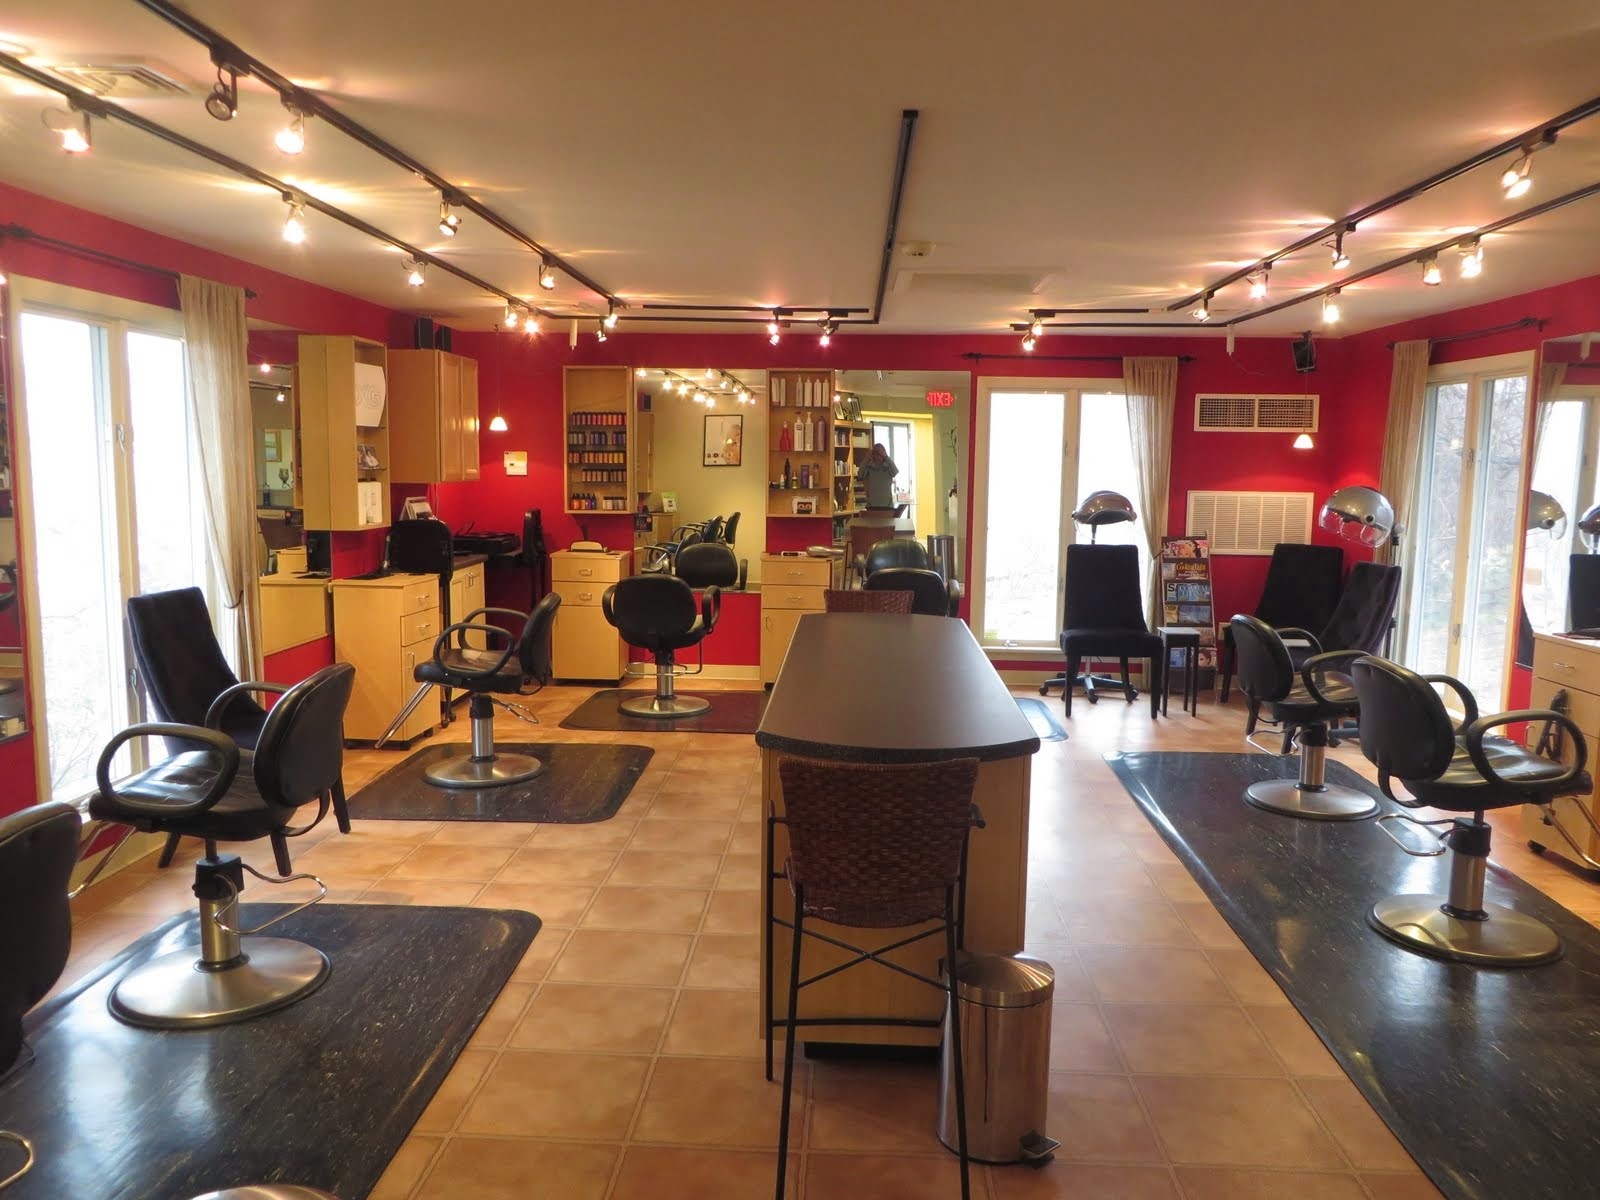 The salon 16 west in orleans ma 02653 for Orleans salon